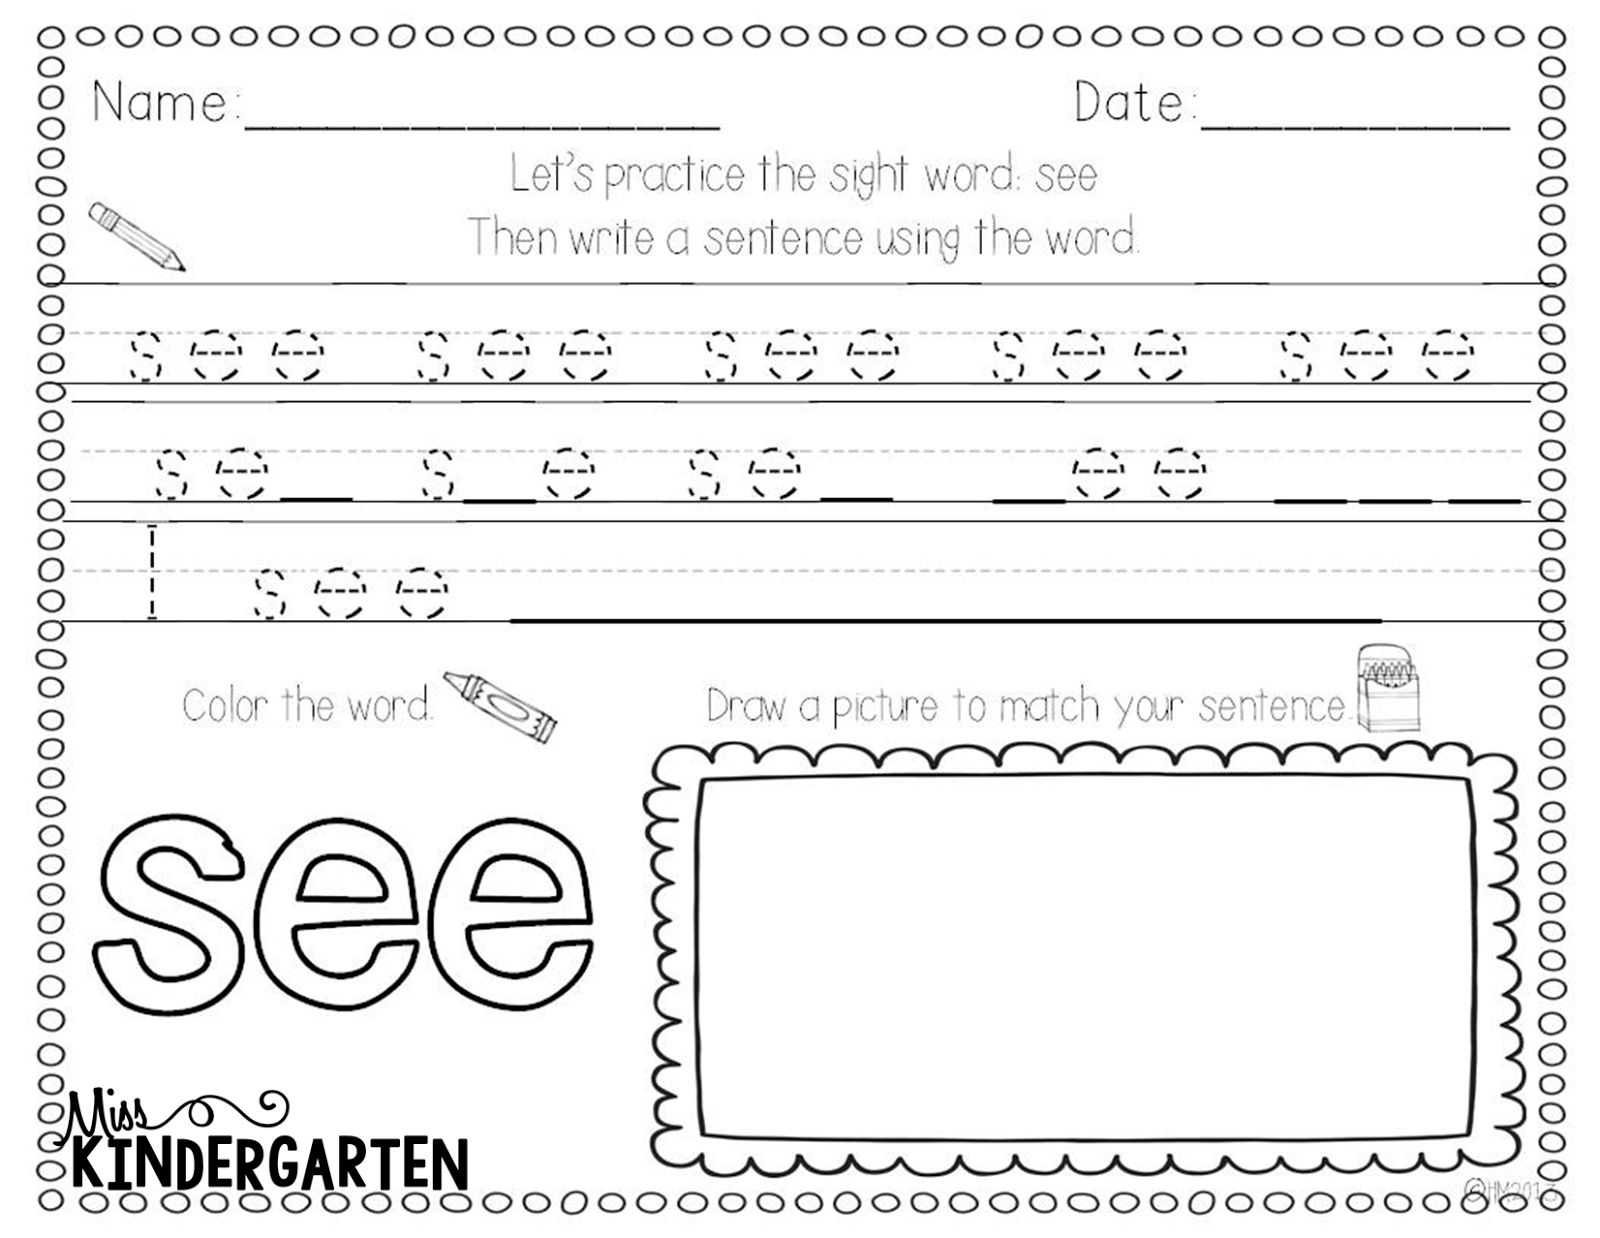 math worksheet : sight word practice!  miss kindergarten : Kindergarten Sentence Writing Worksheets